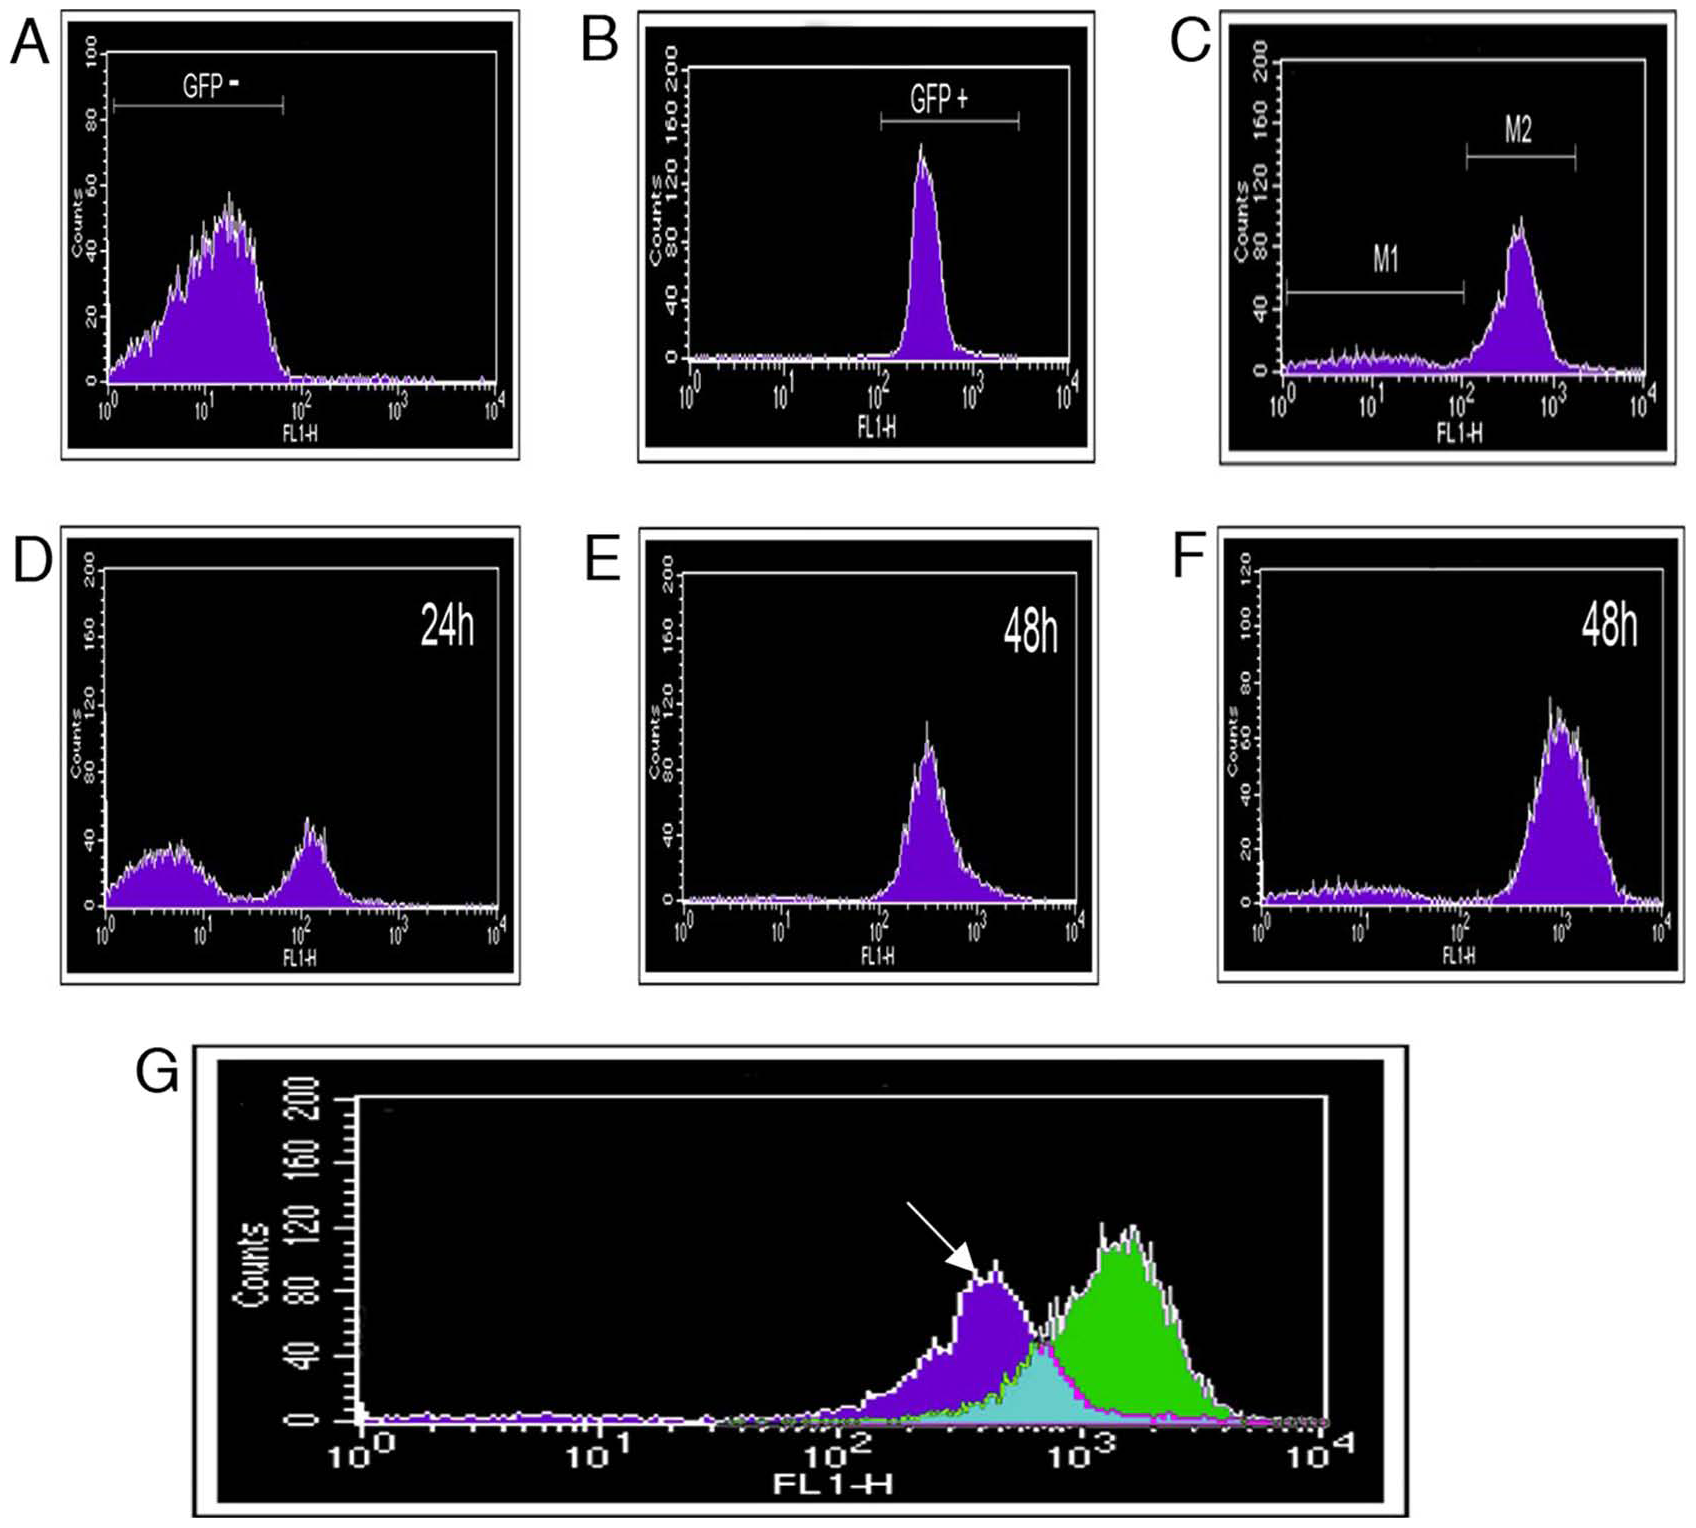 Fluorescence-activated cell sorting (FACS) separation of <i>P. syringae</i> pv. <i>phaseolicola</i> cells based on fluorescent protein expression.